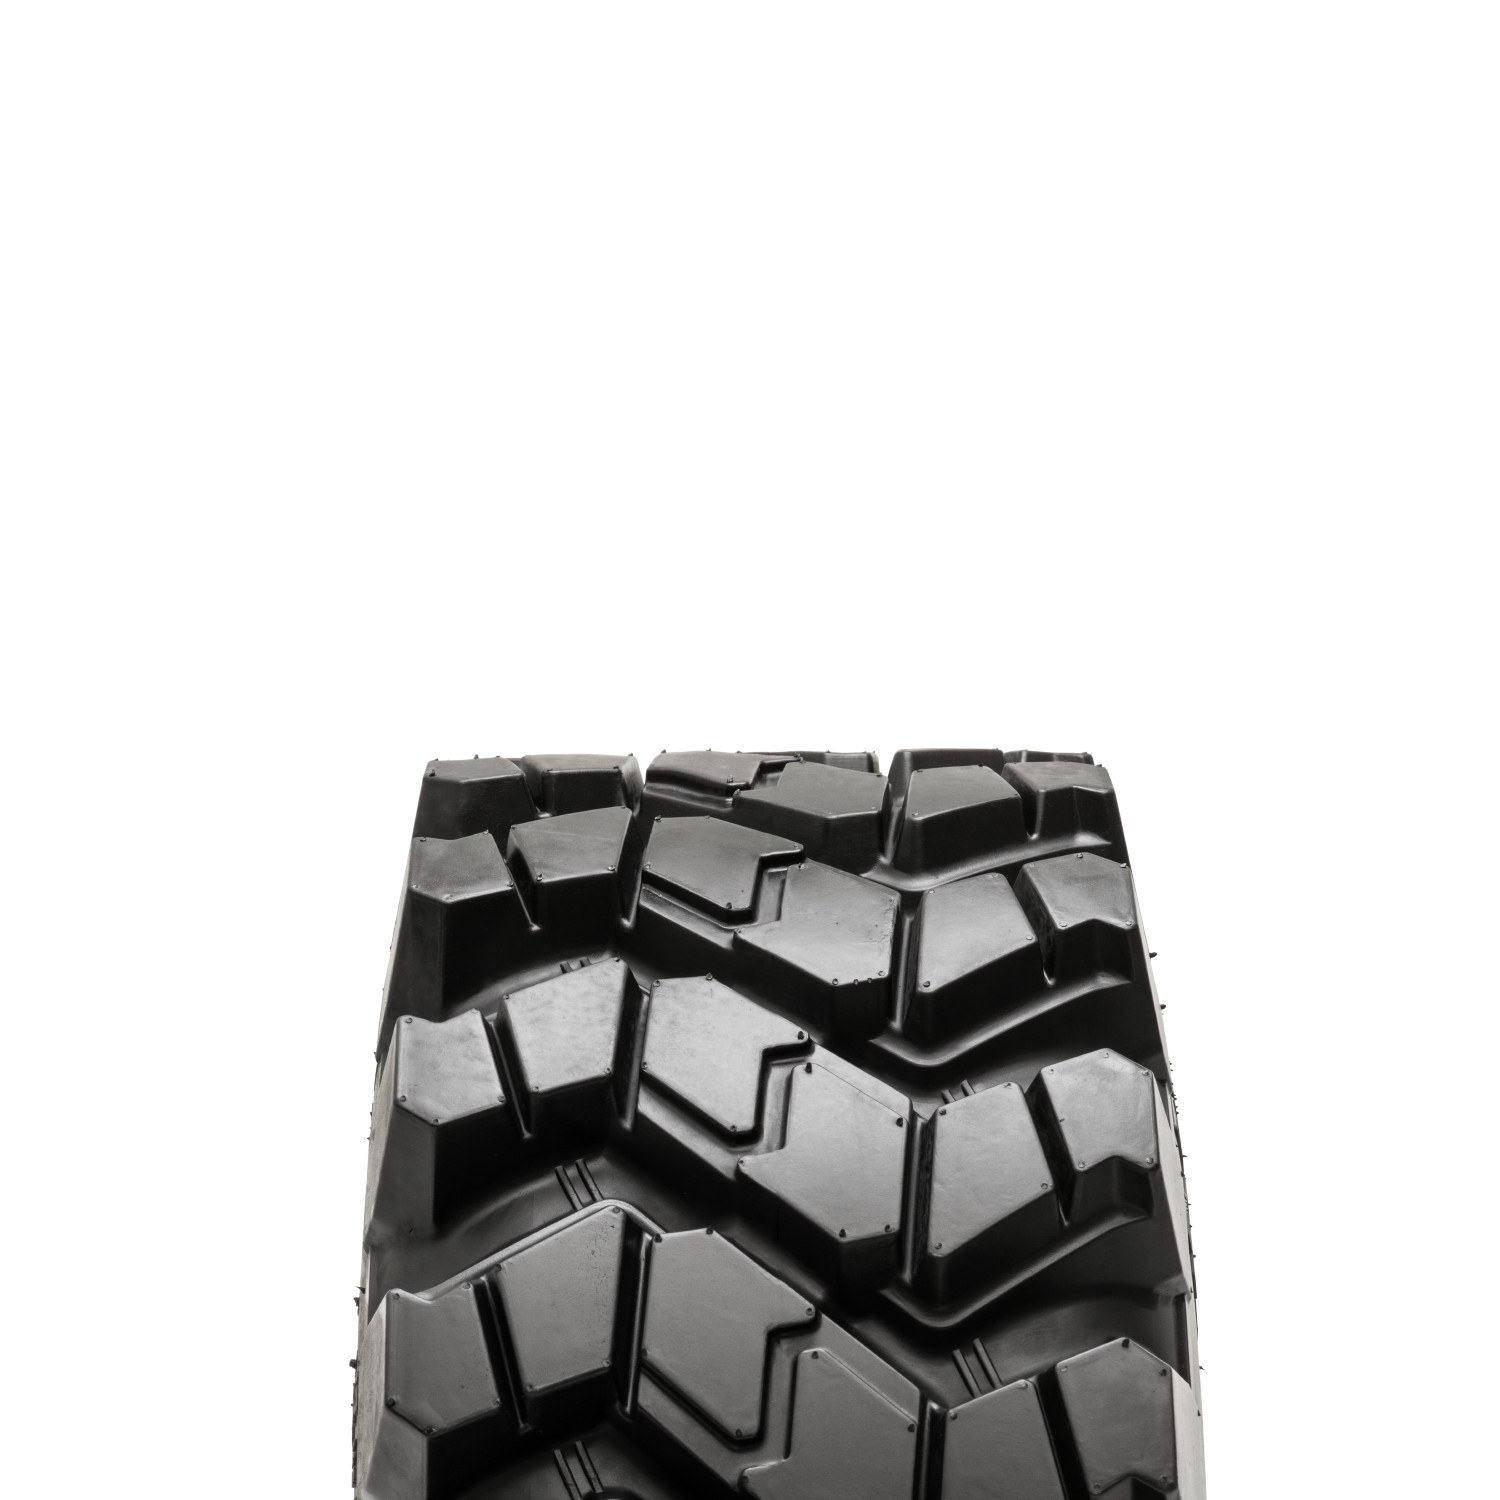 Gomme Nuove Camso 12 - 16.5 R0 12PR SKS 753 STANDARD NHS pneumatici nuovi Estivo